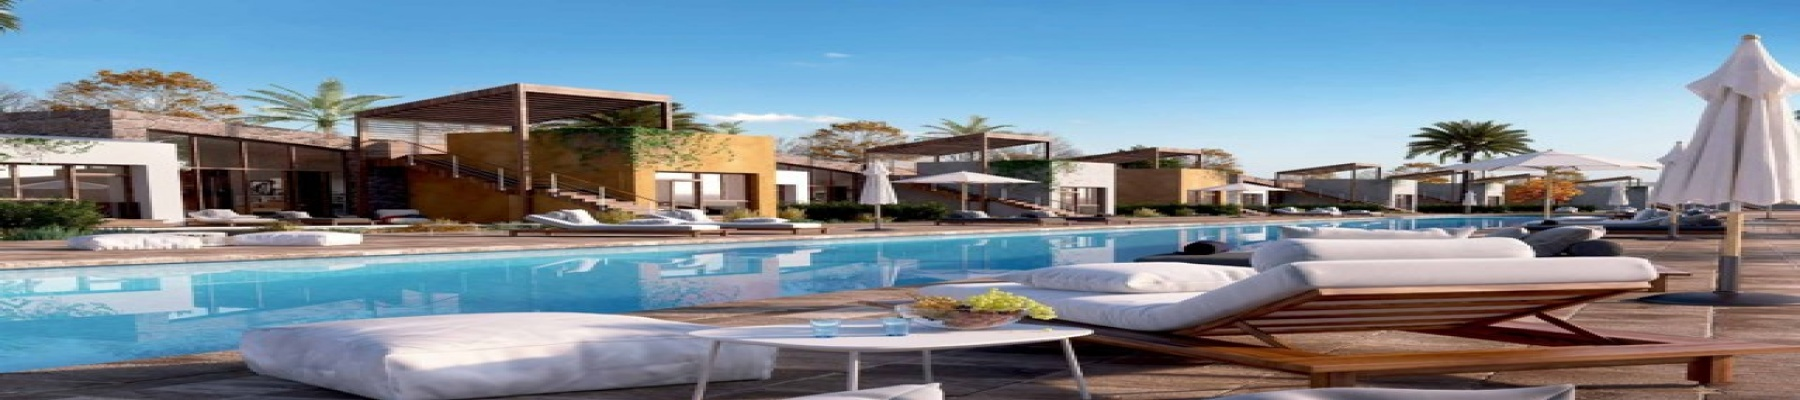 Villas In Soma Bay West For Sale